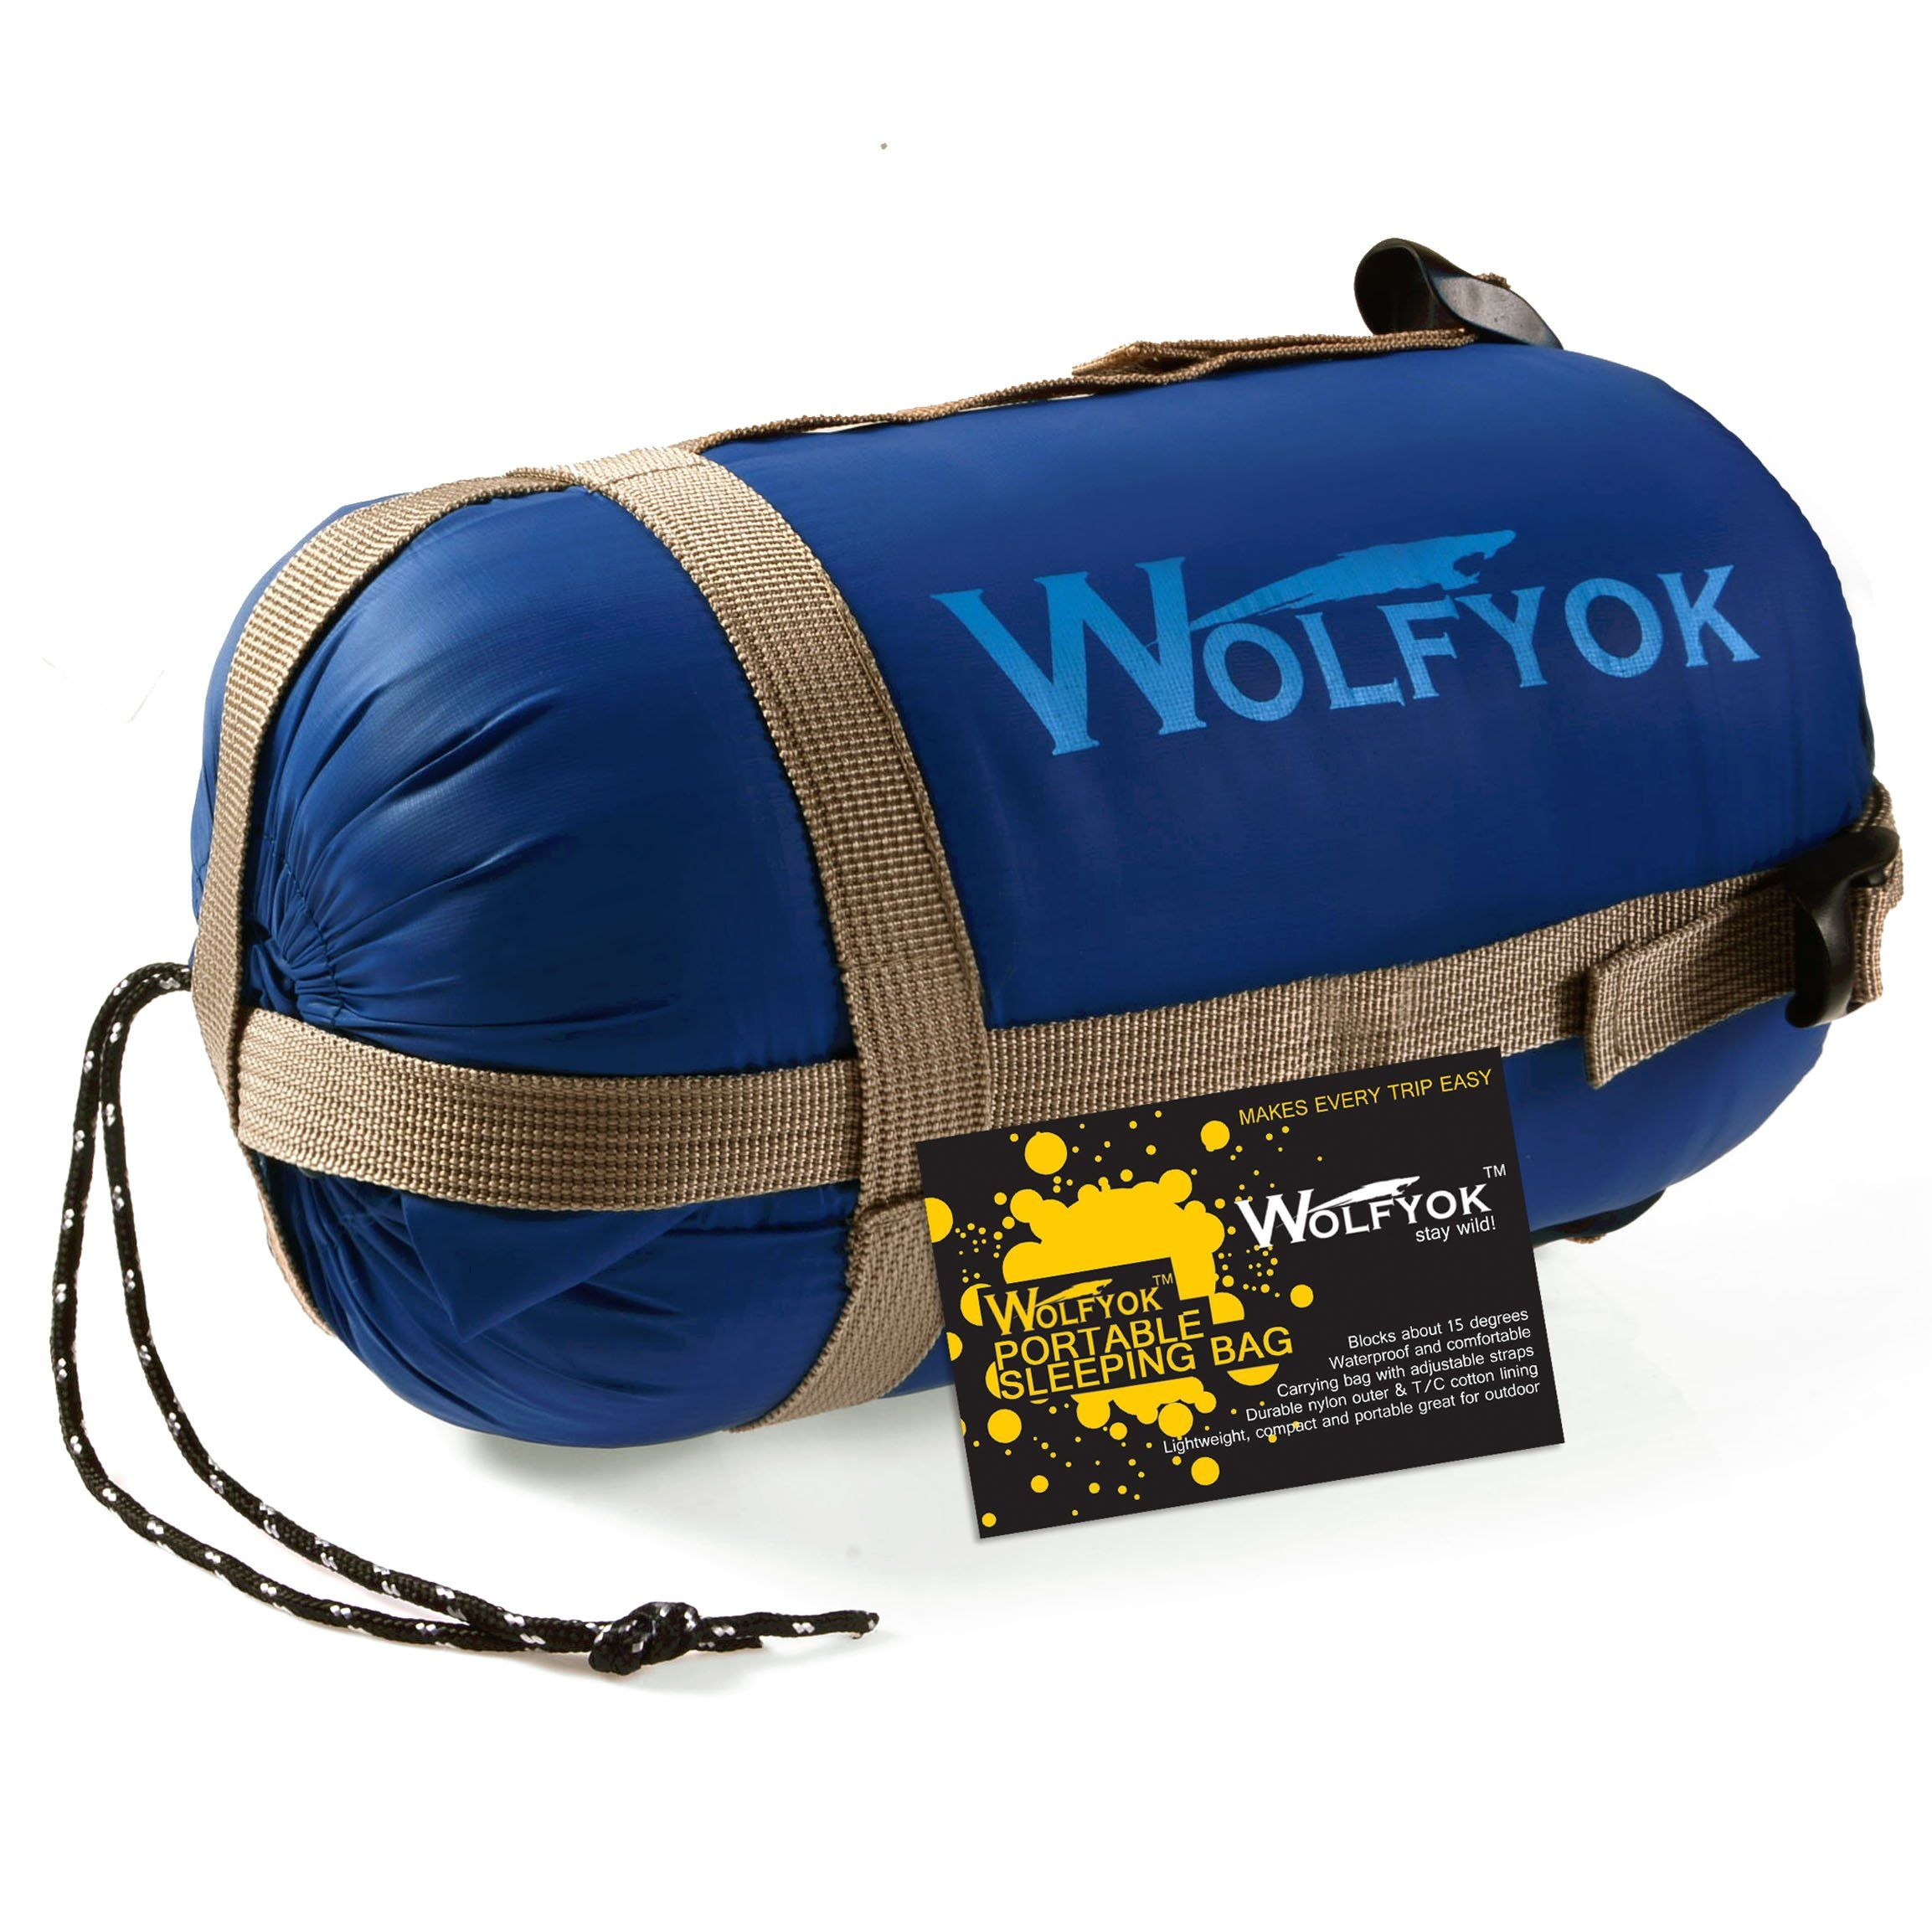 Wolfyok Tm Portable Outdoor Traveling Sleeping Bag Hiking Envelope Multifunctional Camping For Spring Summer Autumn